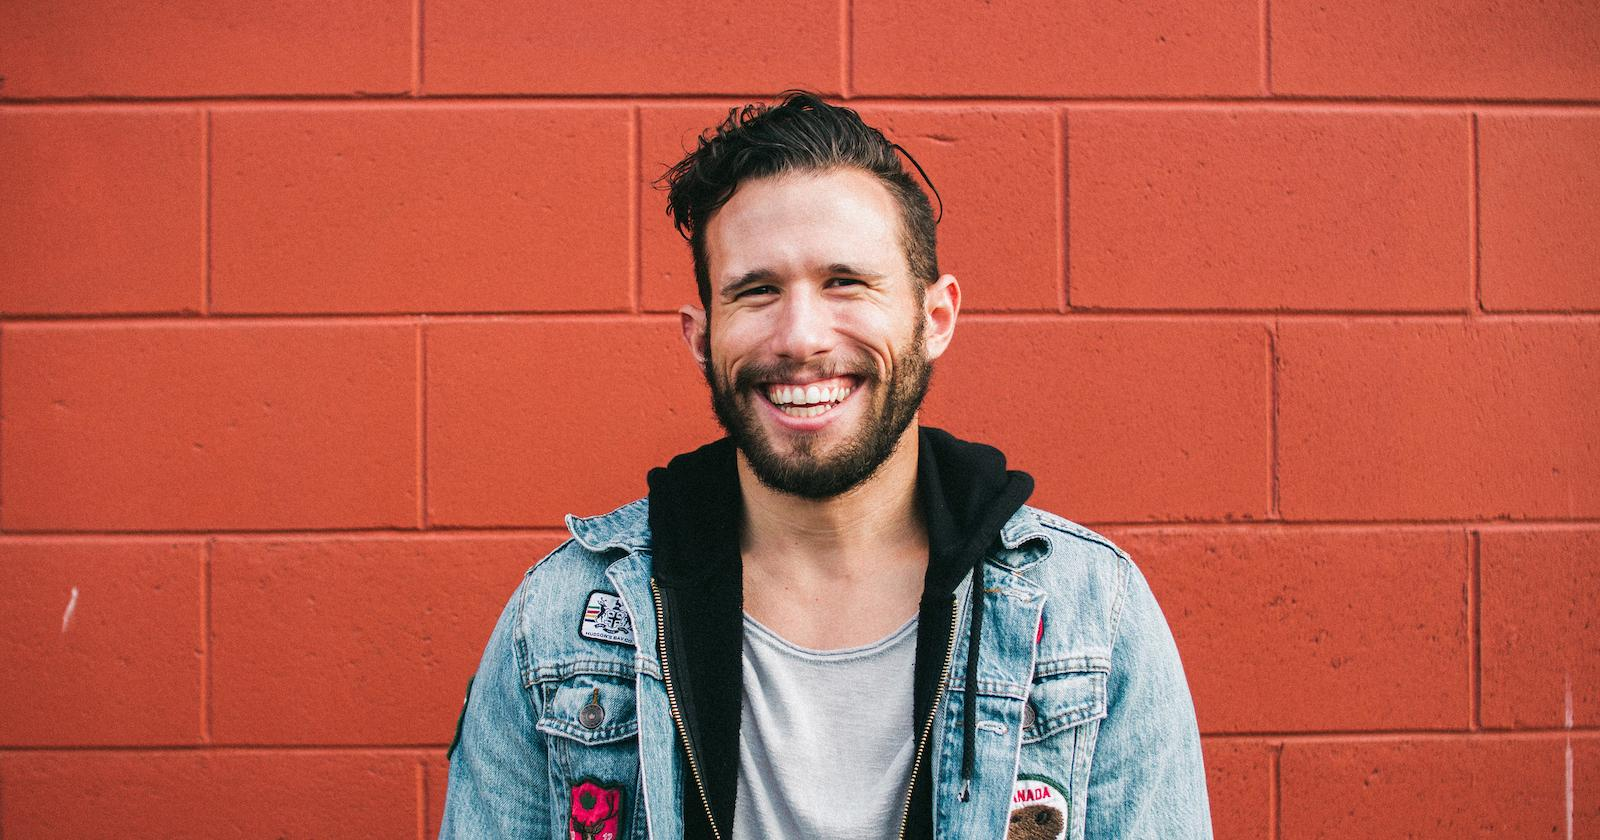 Joshua Leventhal will return to the Hildebrand stage to headline a concert at Youth Quake 2020.